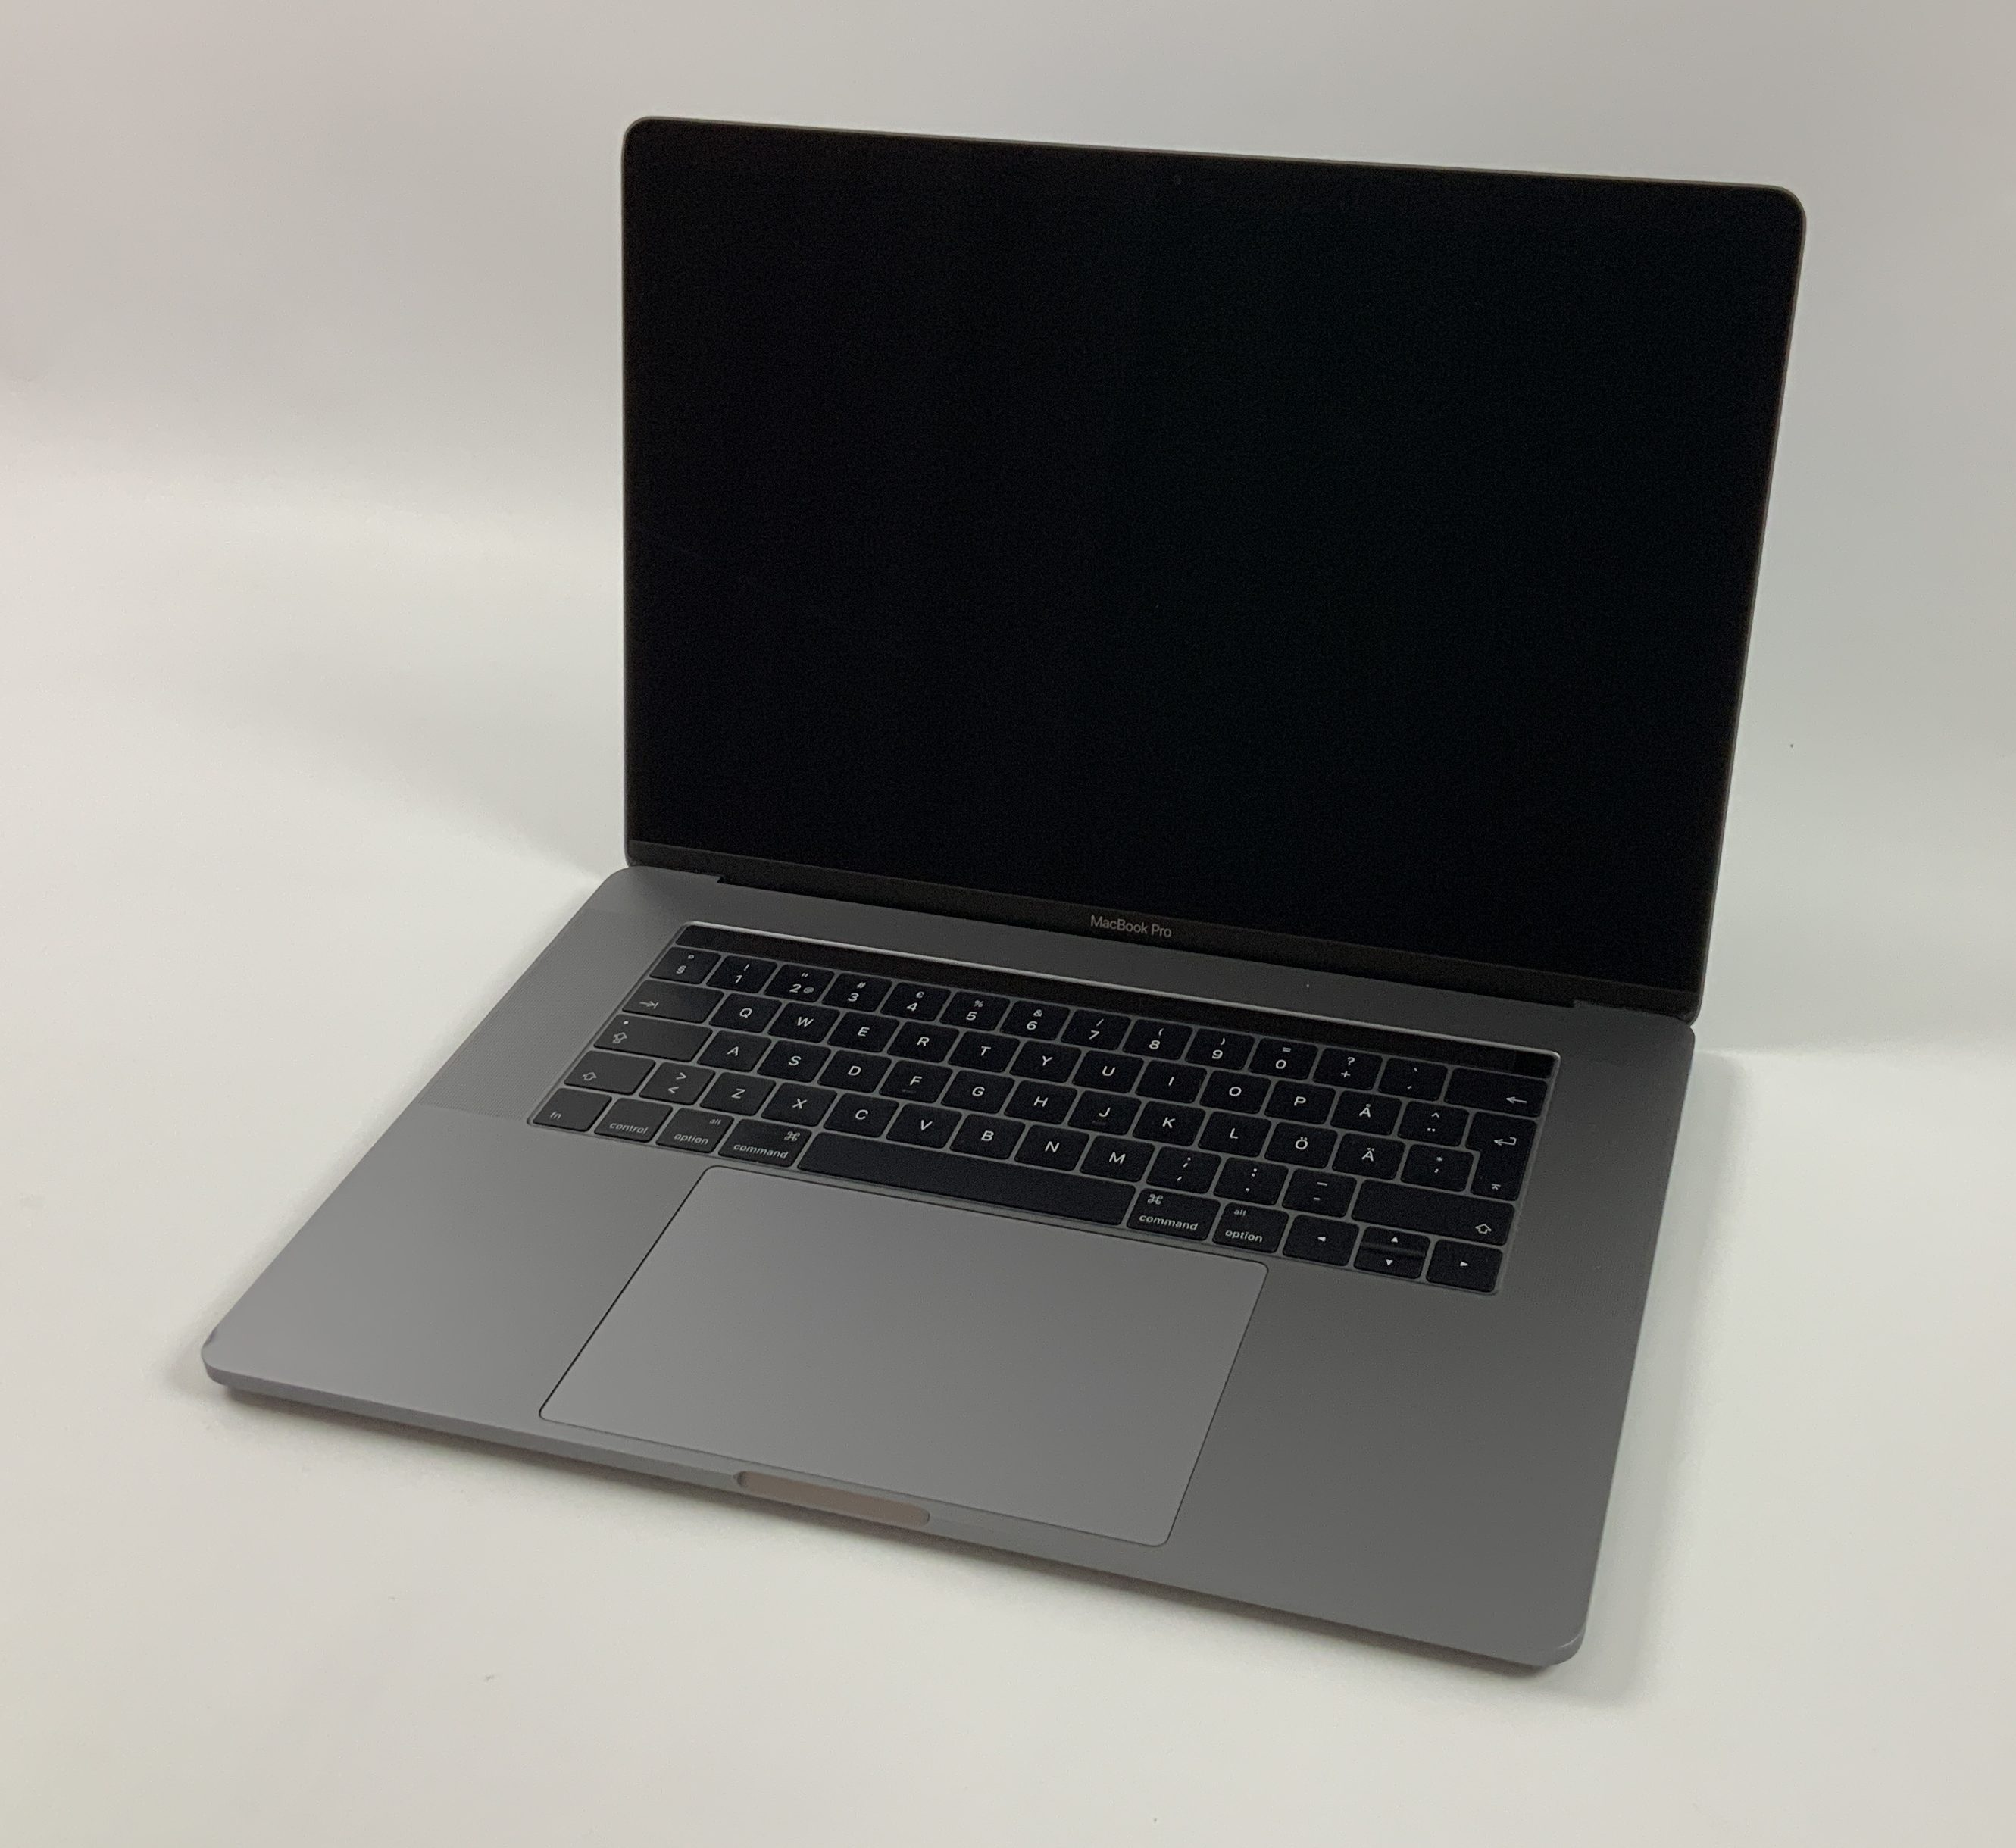 "MacBook Pro 15"" Touch Bar Late 2016 (Intel Quad-Core i7 2.6 GHz 16 GB RAM 512 GB SSD), Space Gray, Intel Quad-Core i7 2.6 GHz, 16 GB RAM, 512 GB SSD, Kuva 1"